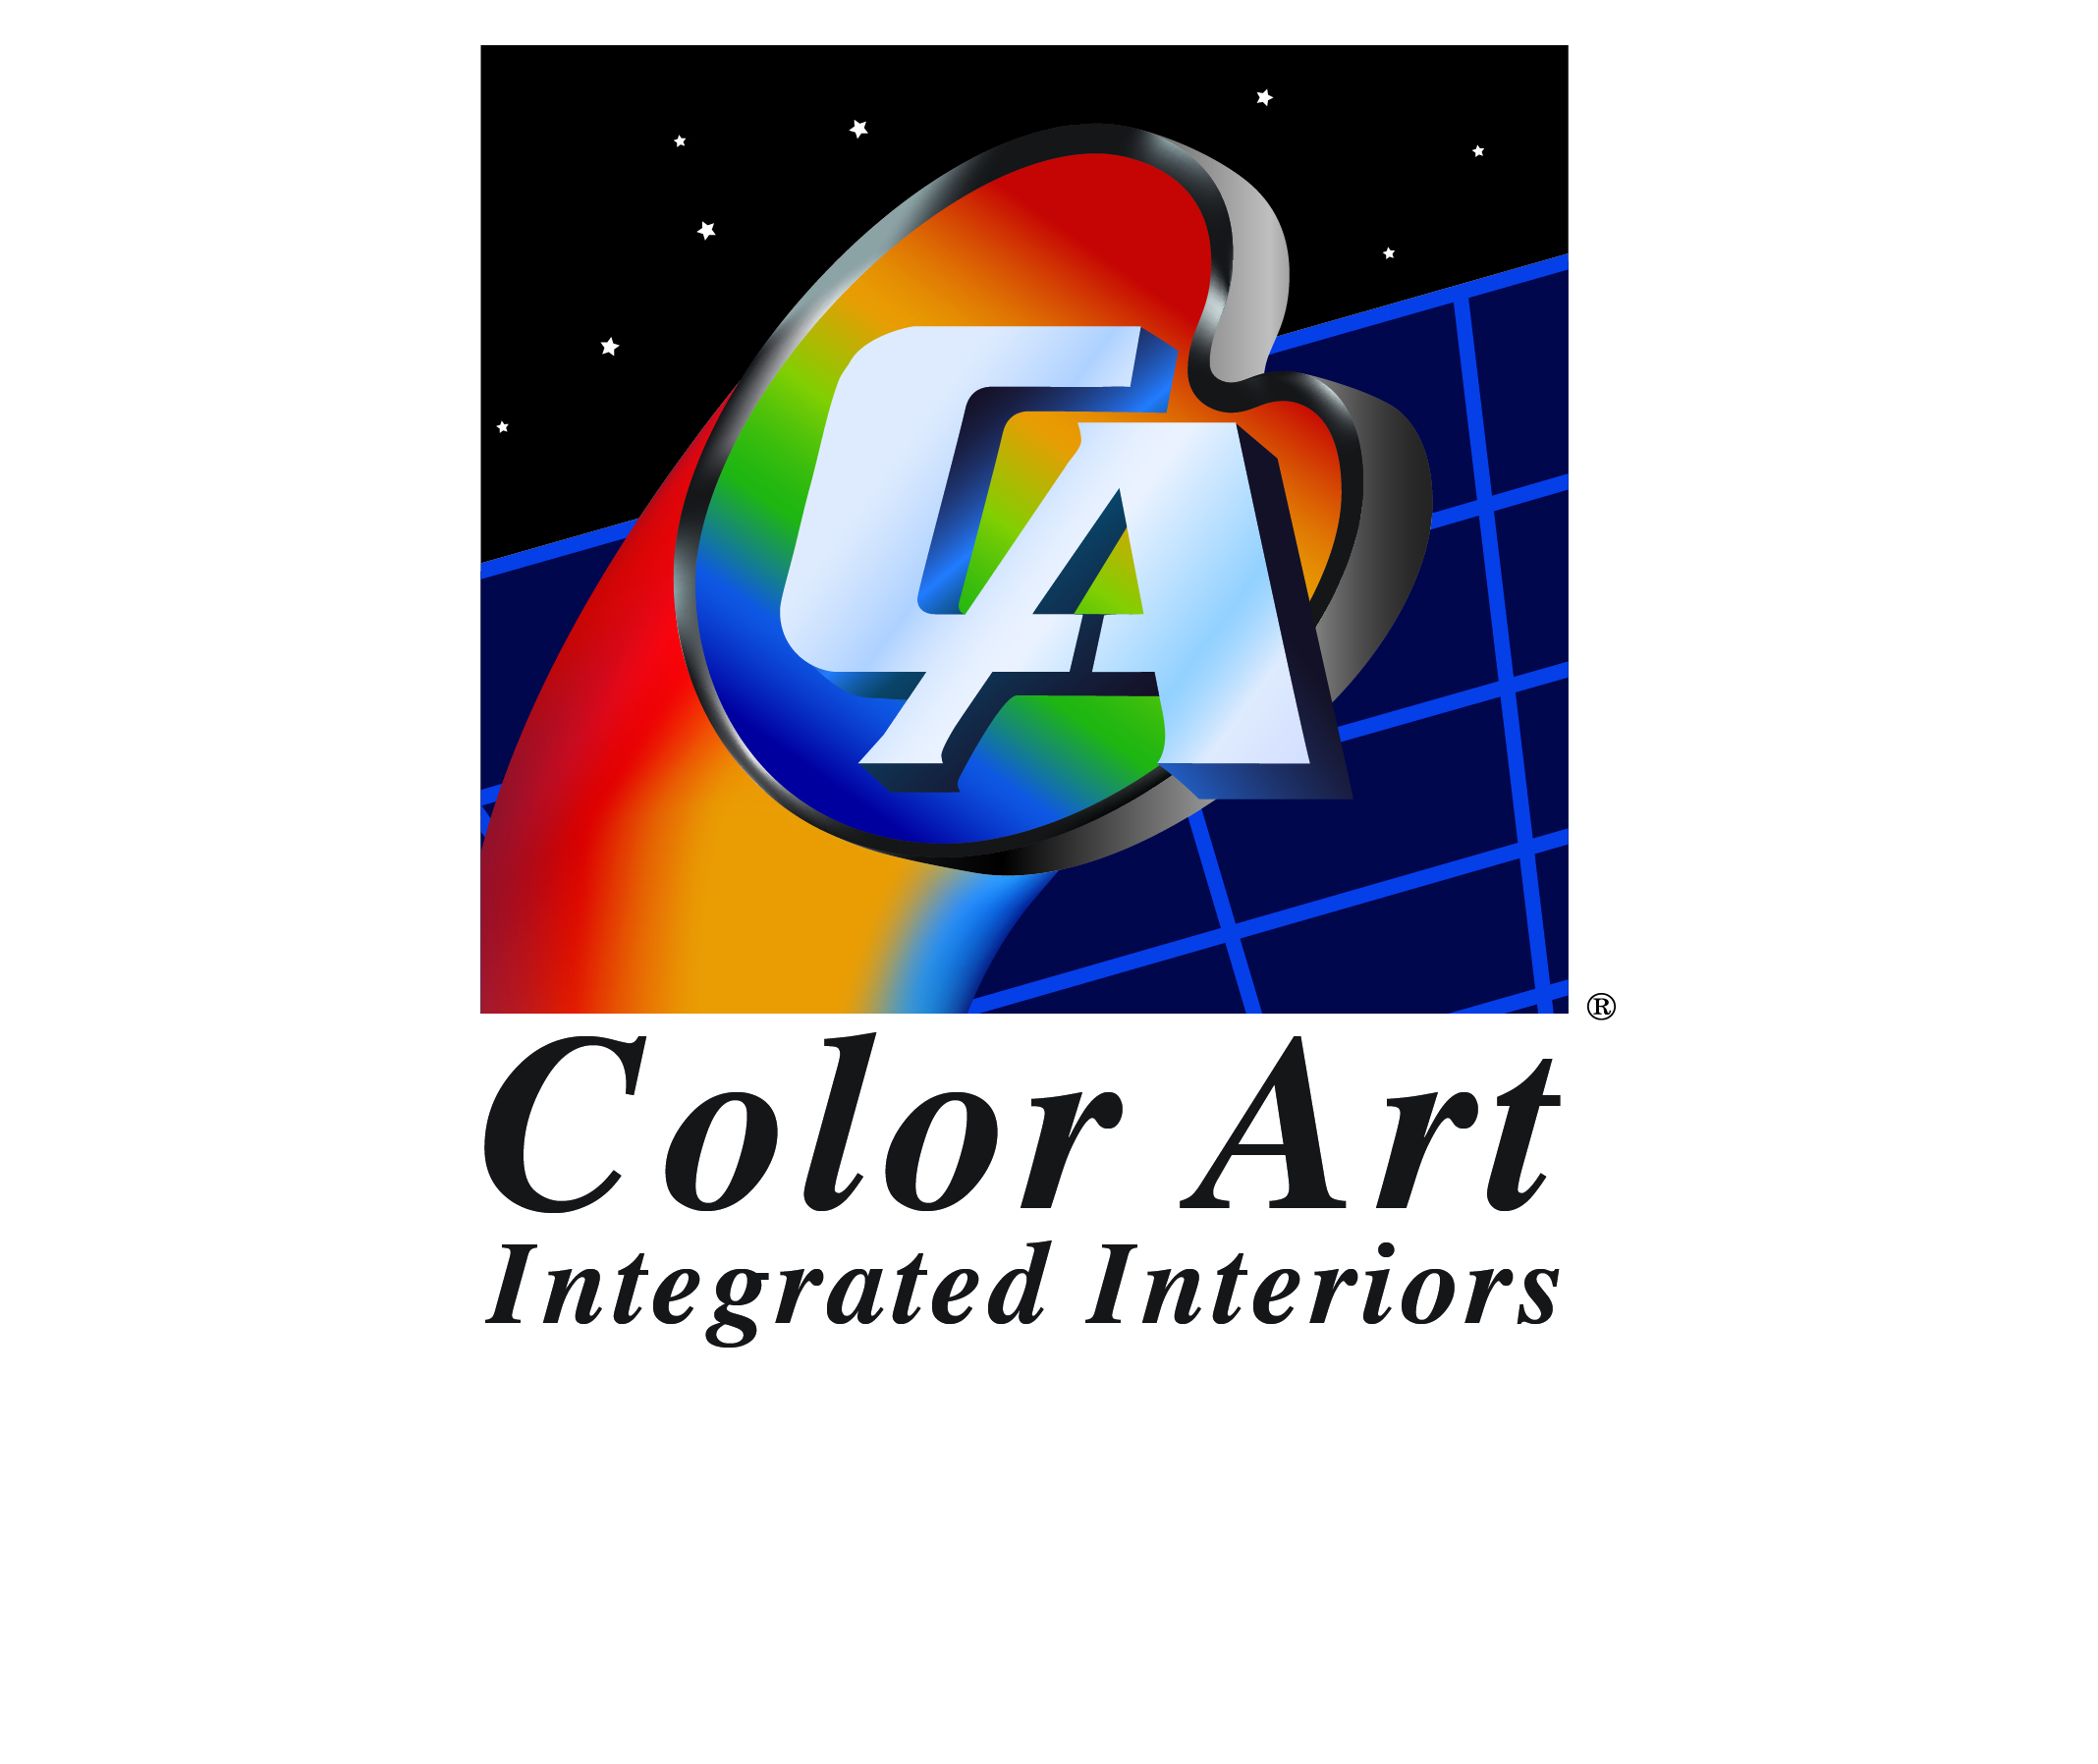 Color Art Integrated